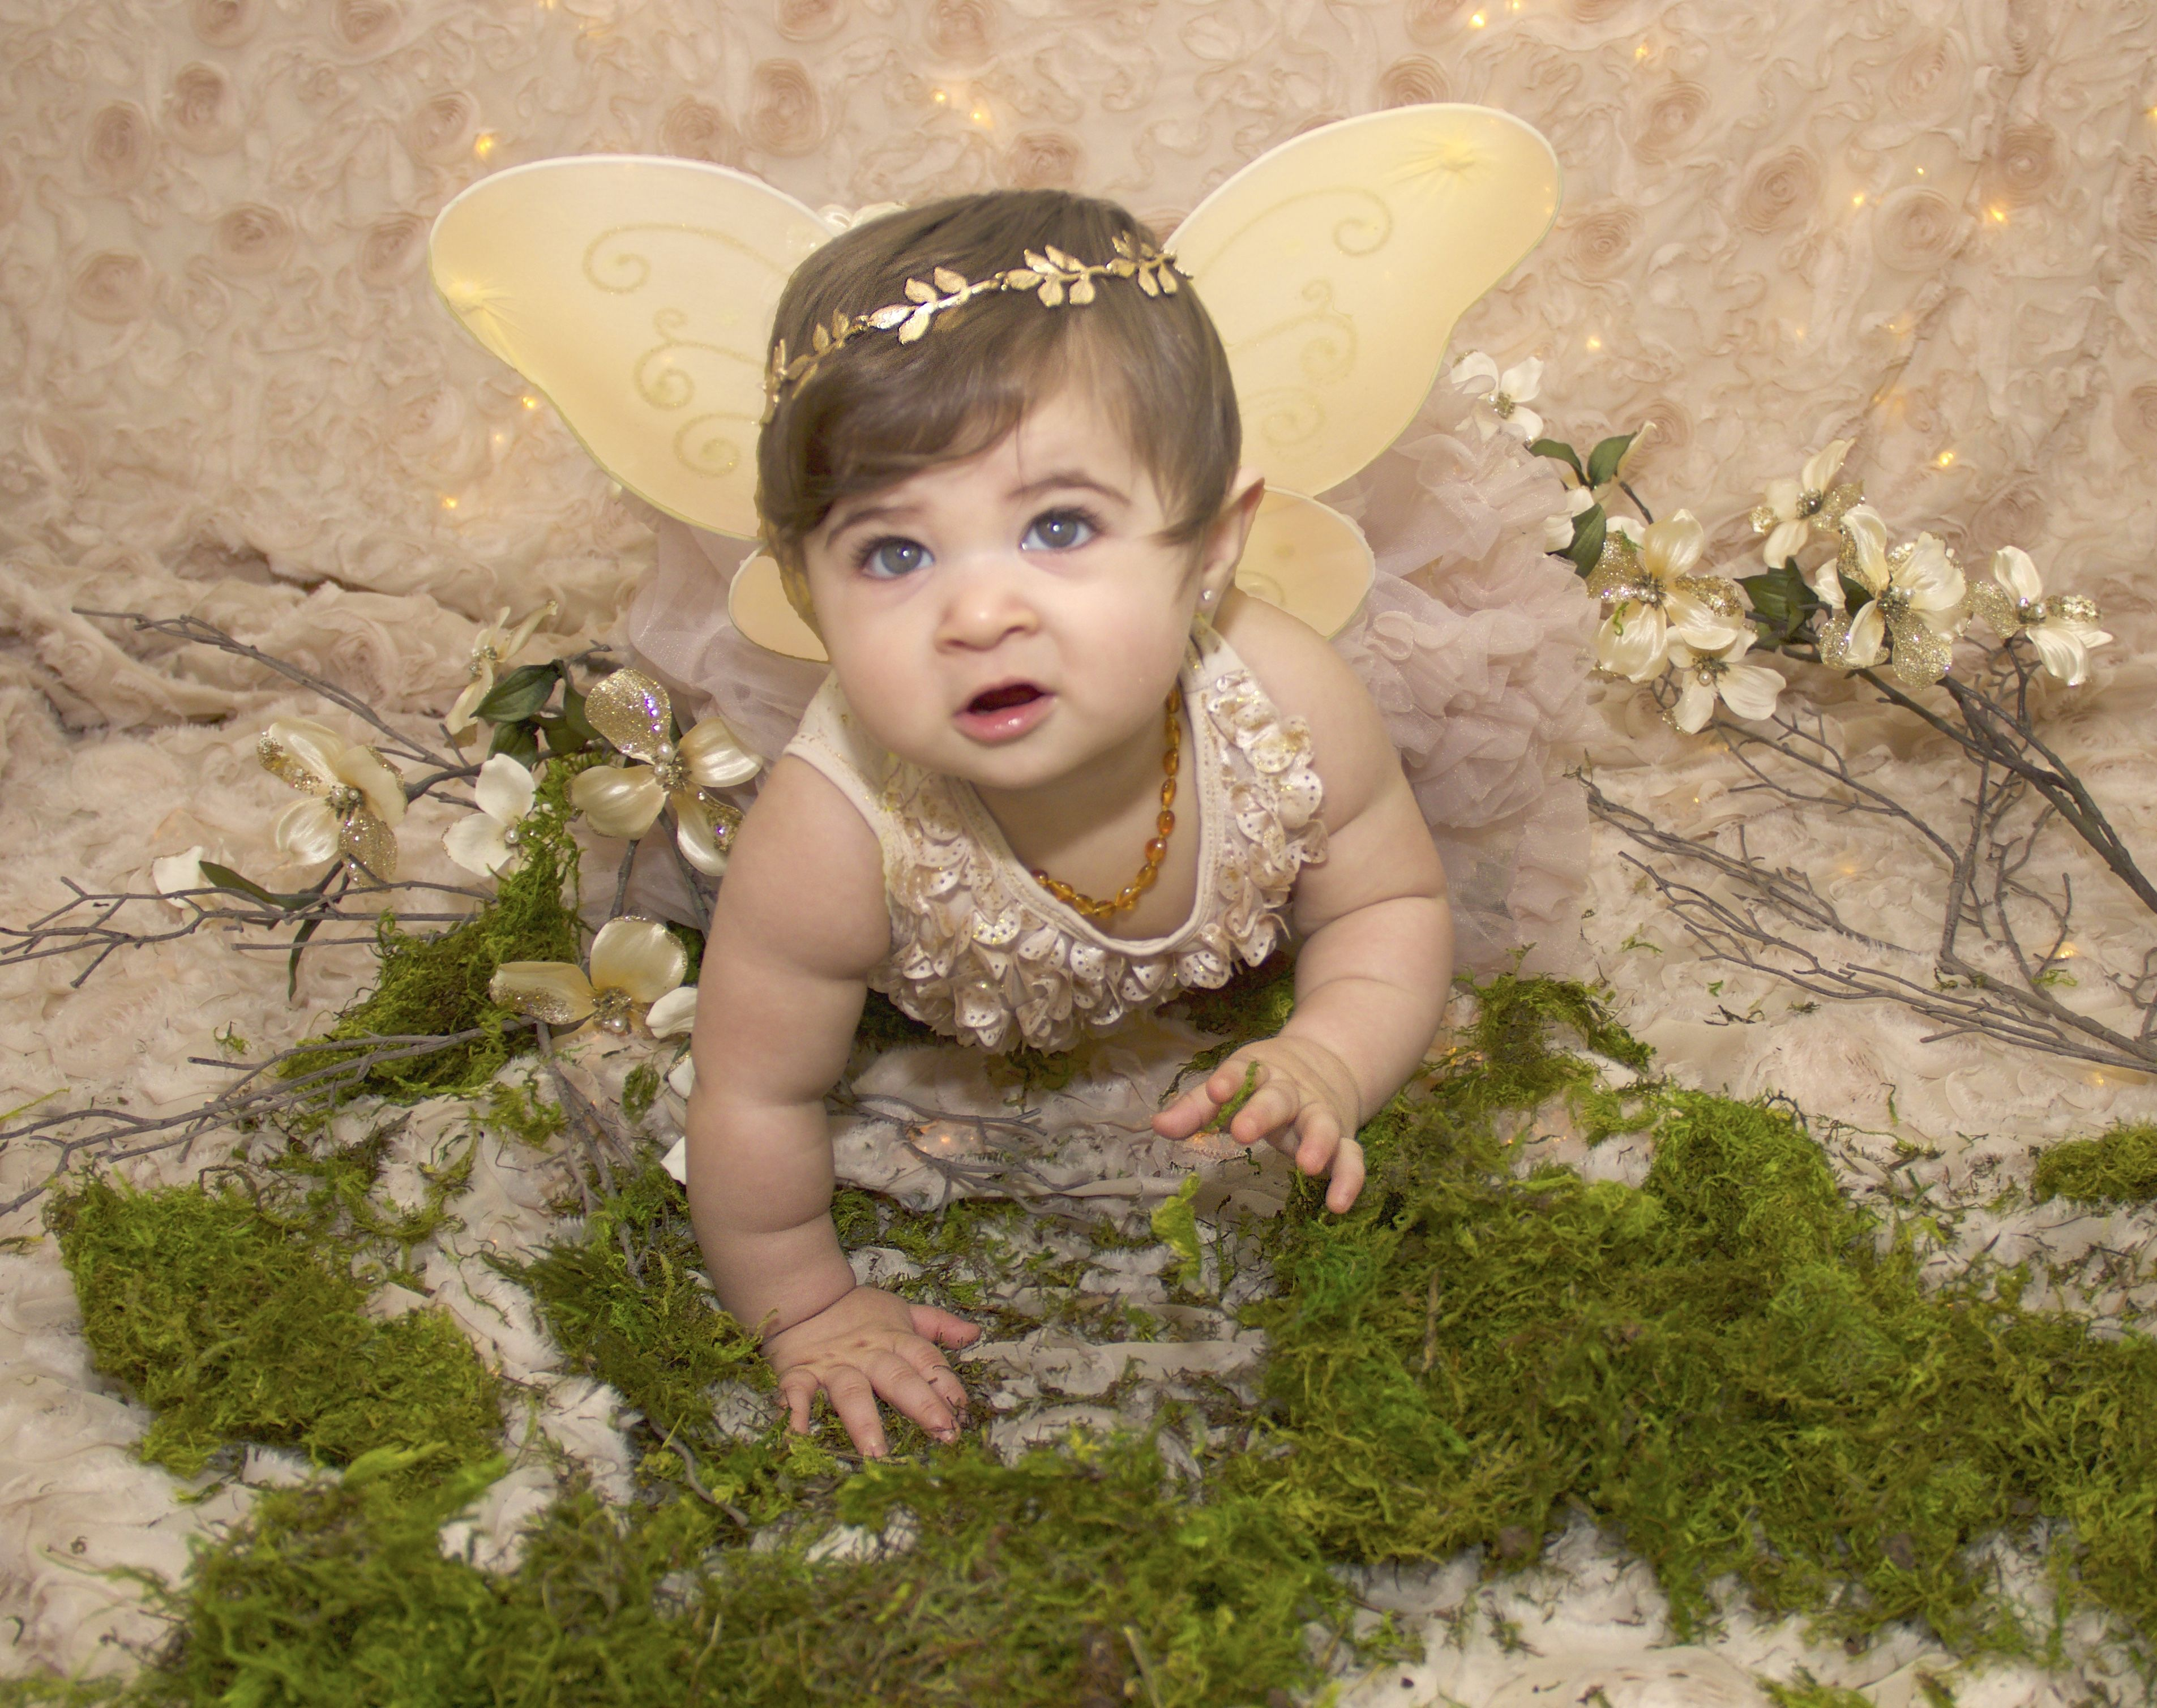 9th Photoshoot Baby Girl Pictures Fall Theme Halloween Theme Fairy Fairy Photoshoot Baby Girl Pictures Girl Photo Shoots